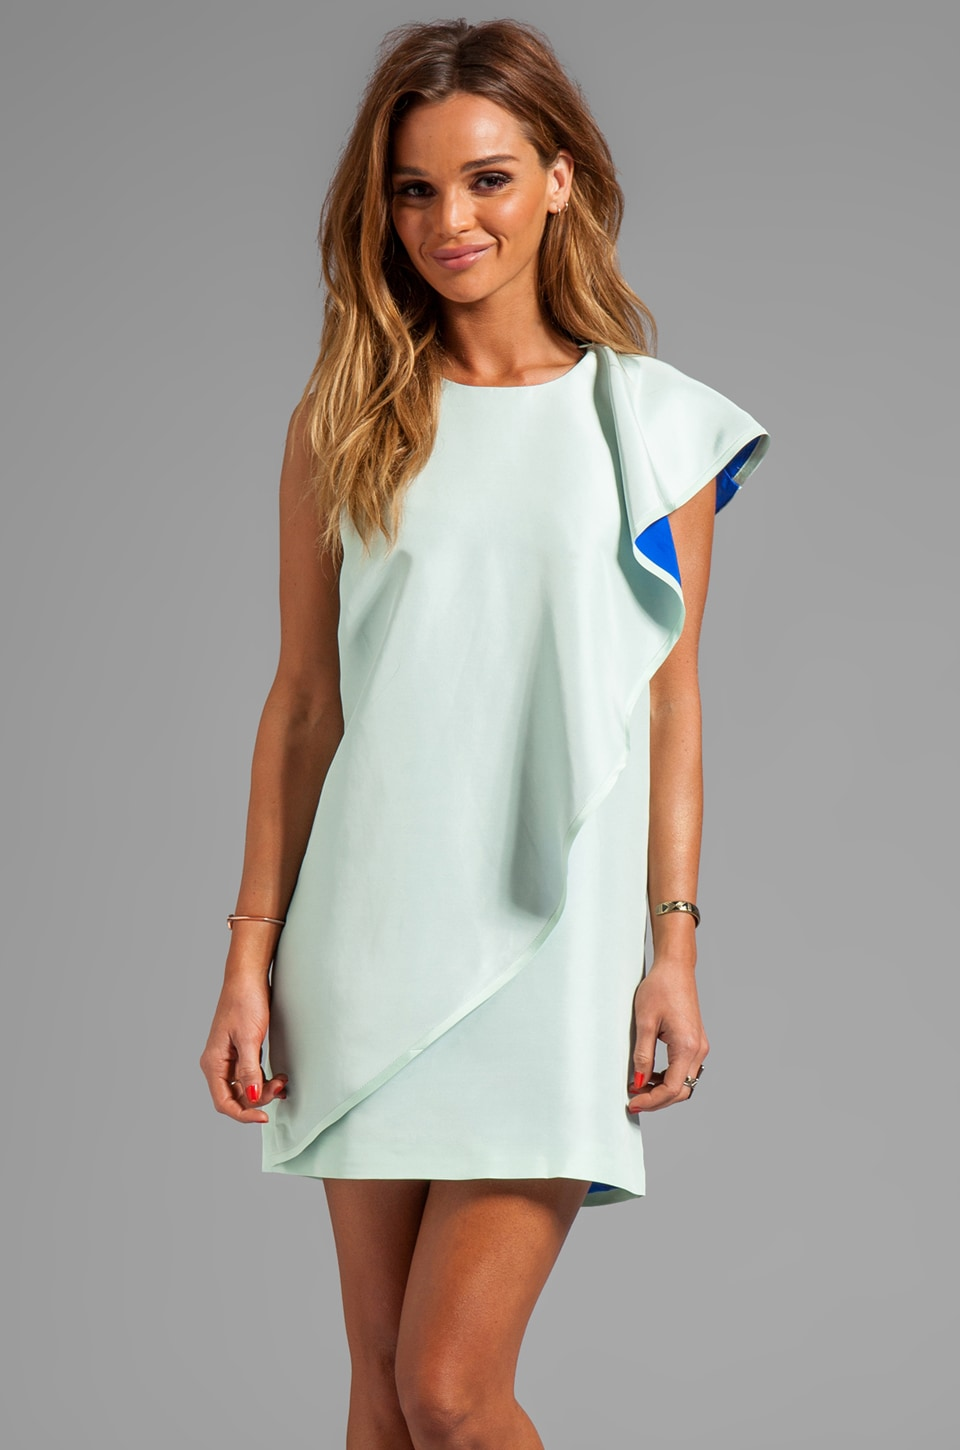 Cynthia Rowley Frosted Silk Dupioni Dress in Mint/Blue